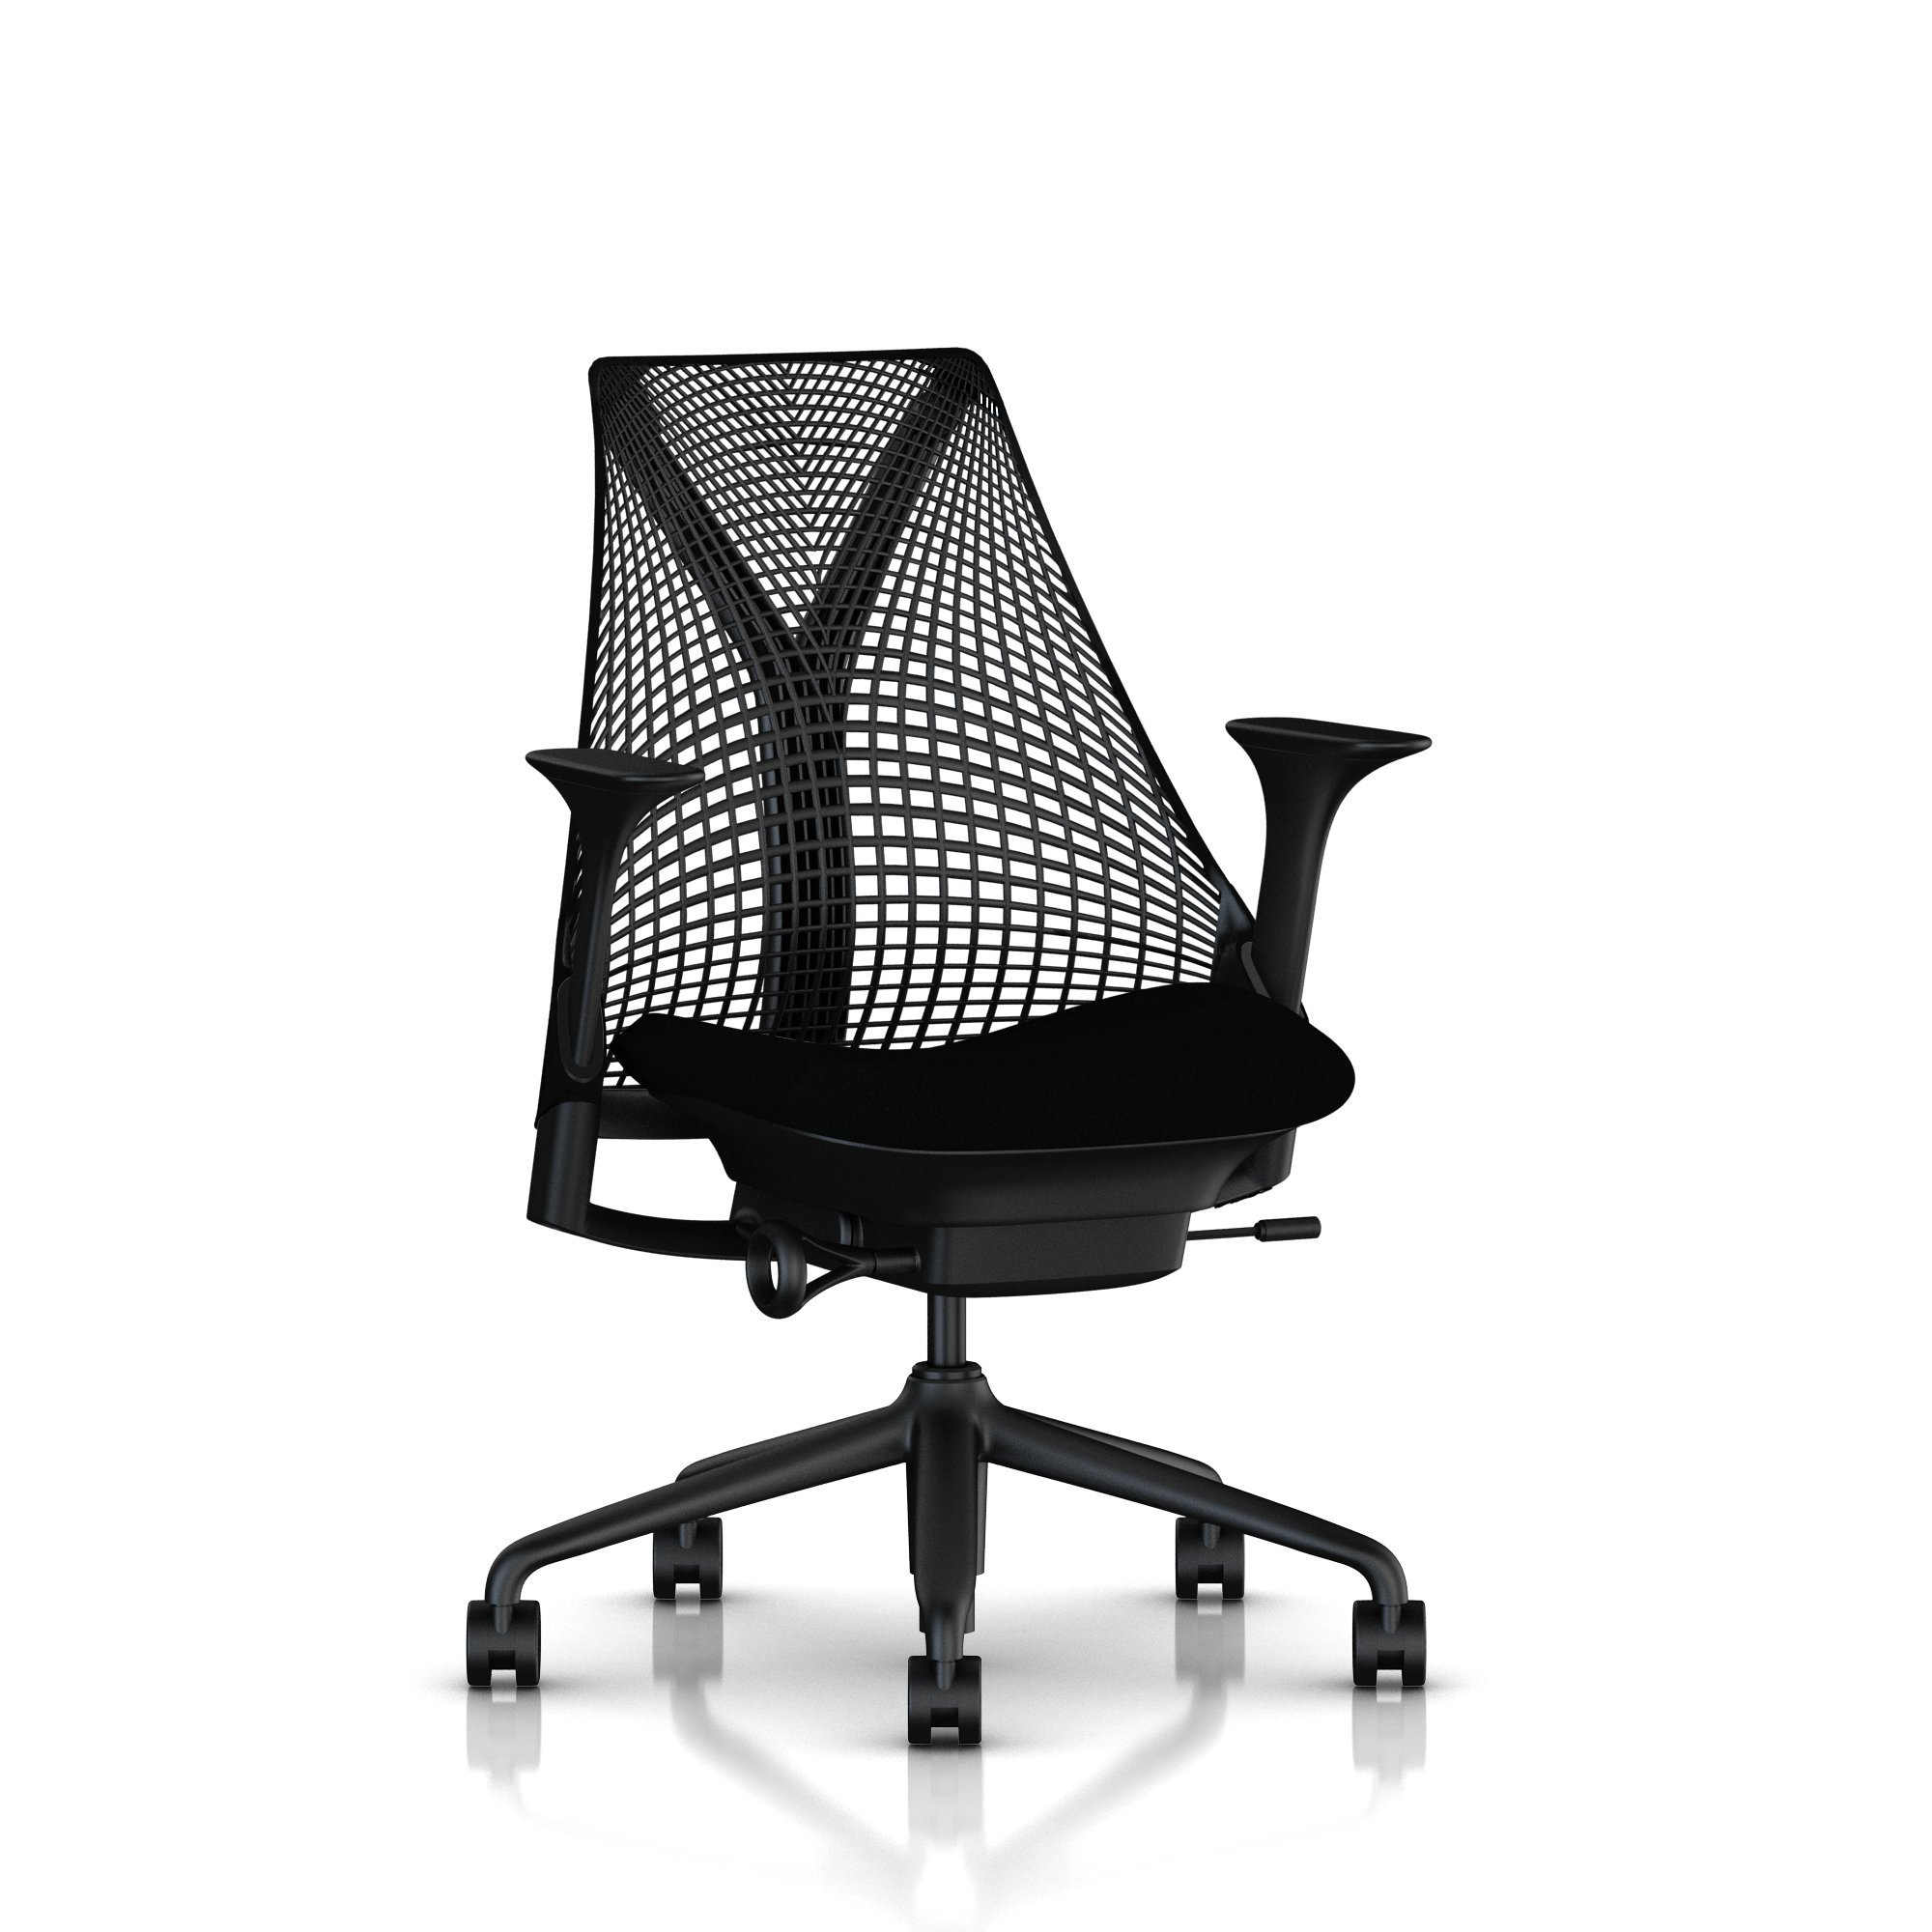 Herman Miller AS1SA22HFN2BKBBBKBK9201 Sayl Chair Crepe Licorice